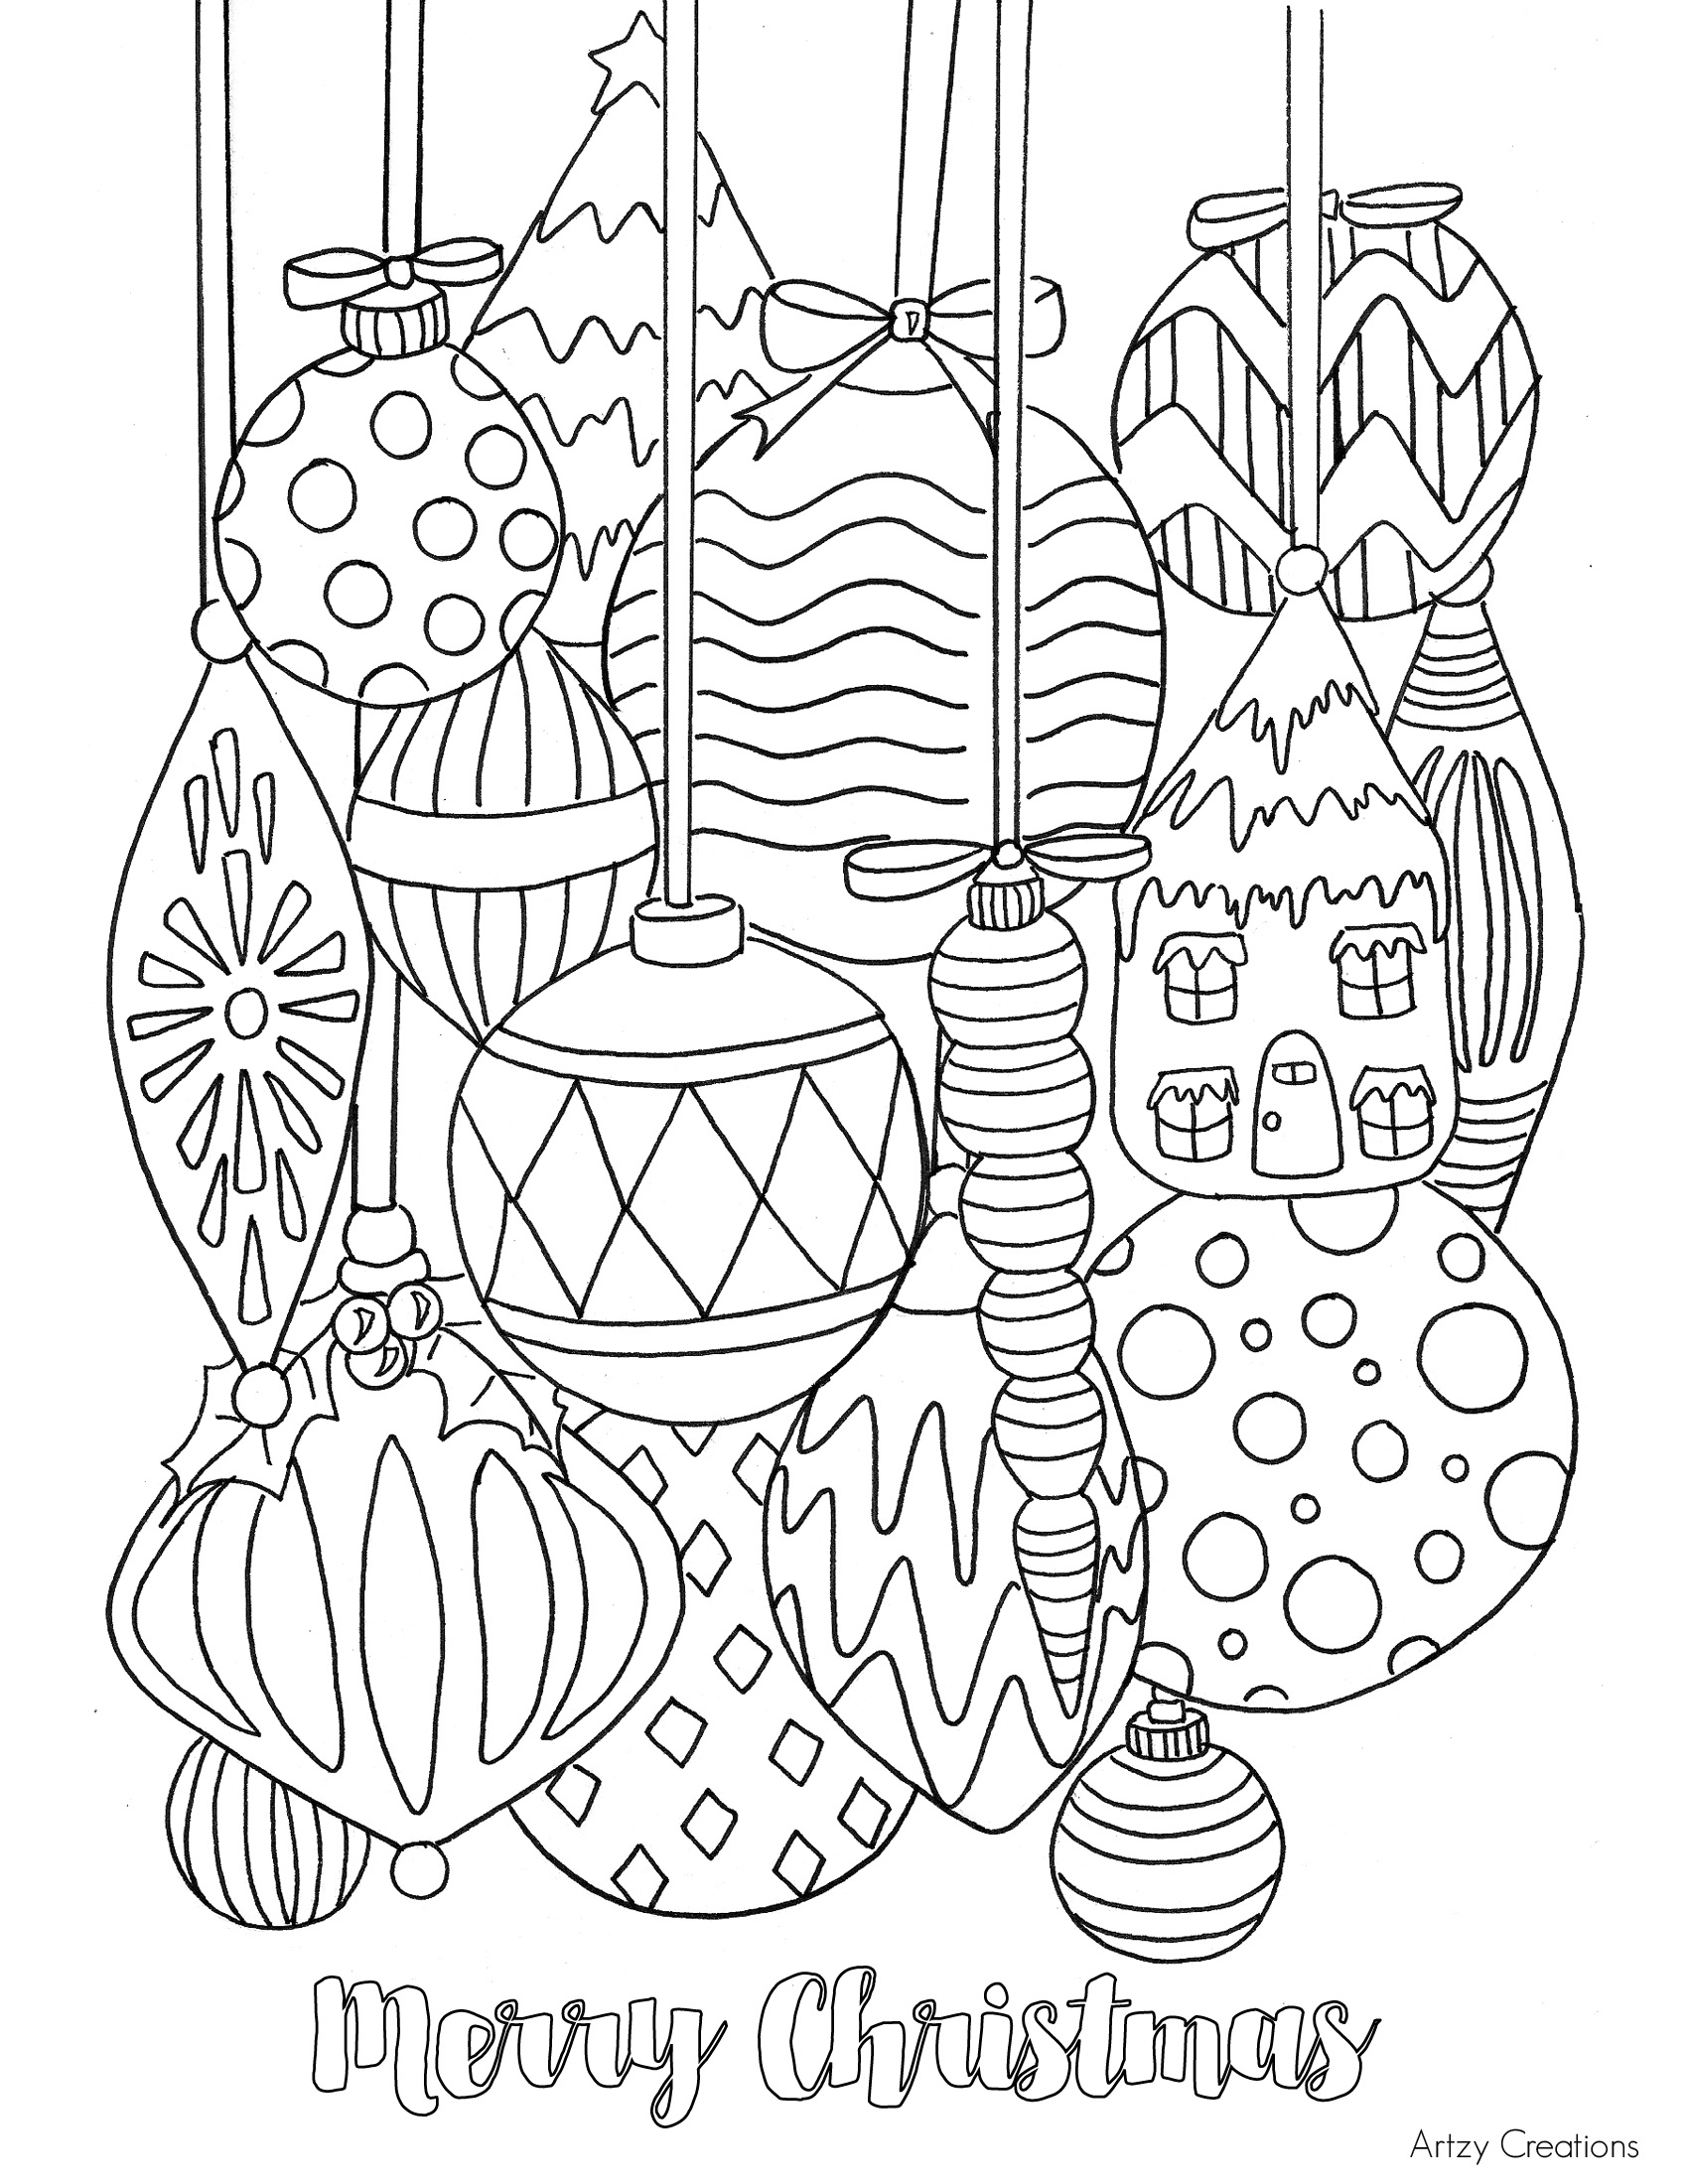 Free Christmas Ornament Coloring Page - Tgif - This Grandma Is Fun - Free Printable Christmas Coloring Pages